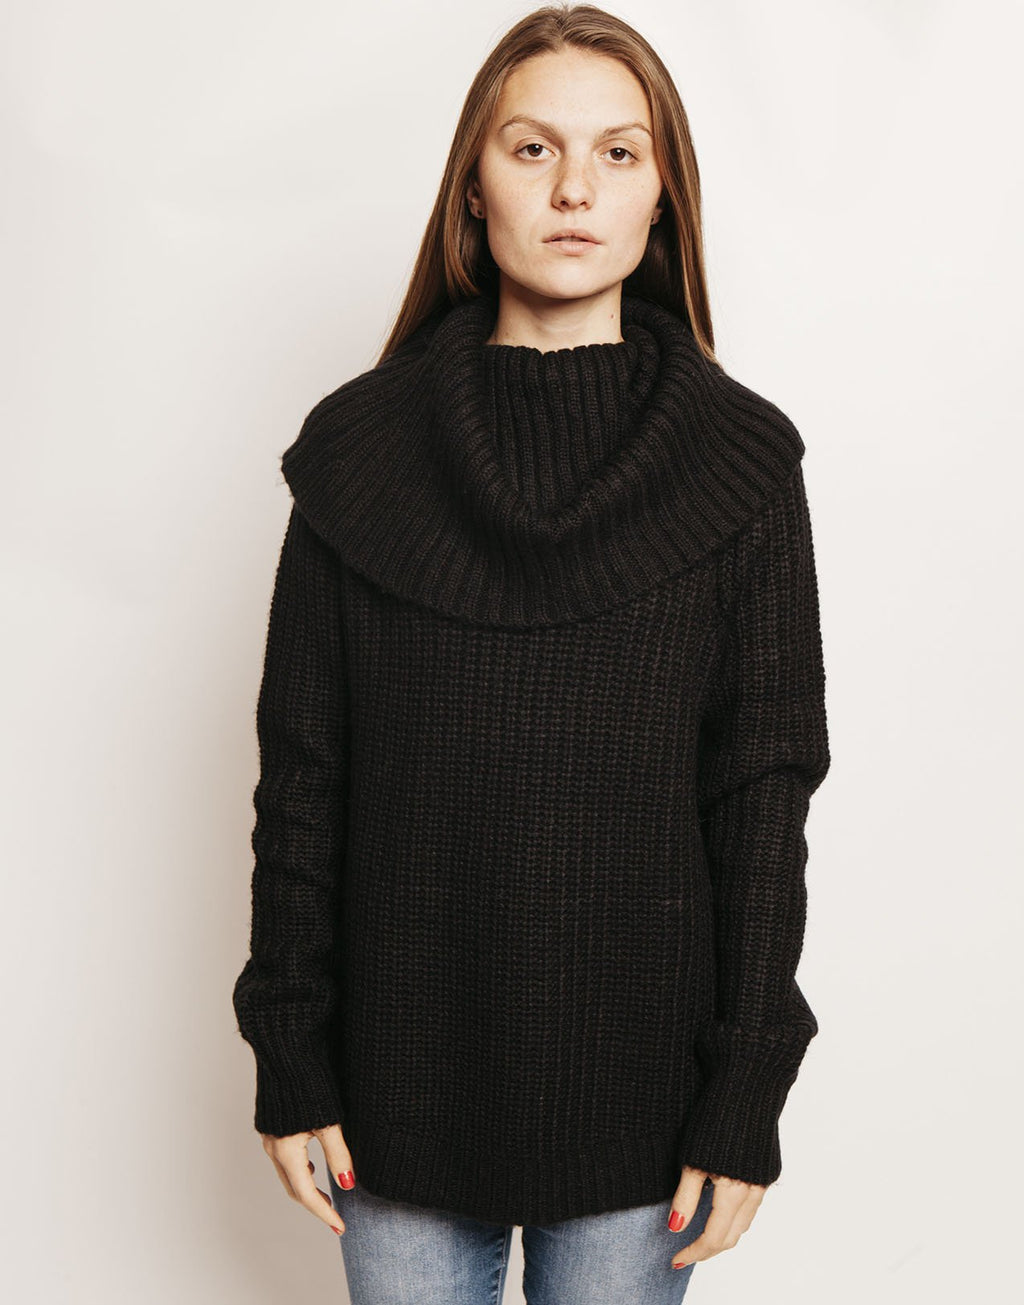 AVERY COWL NECK SWEATER BLACK - BROOKLYN INDUSTRIES